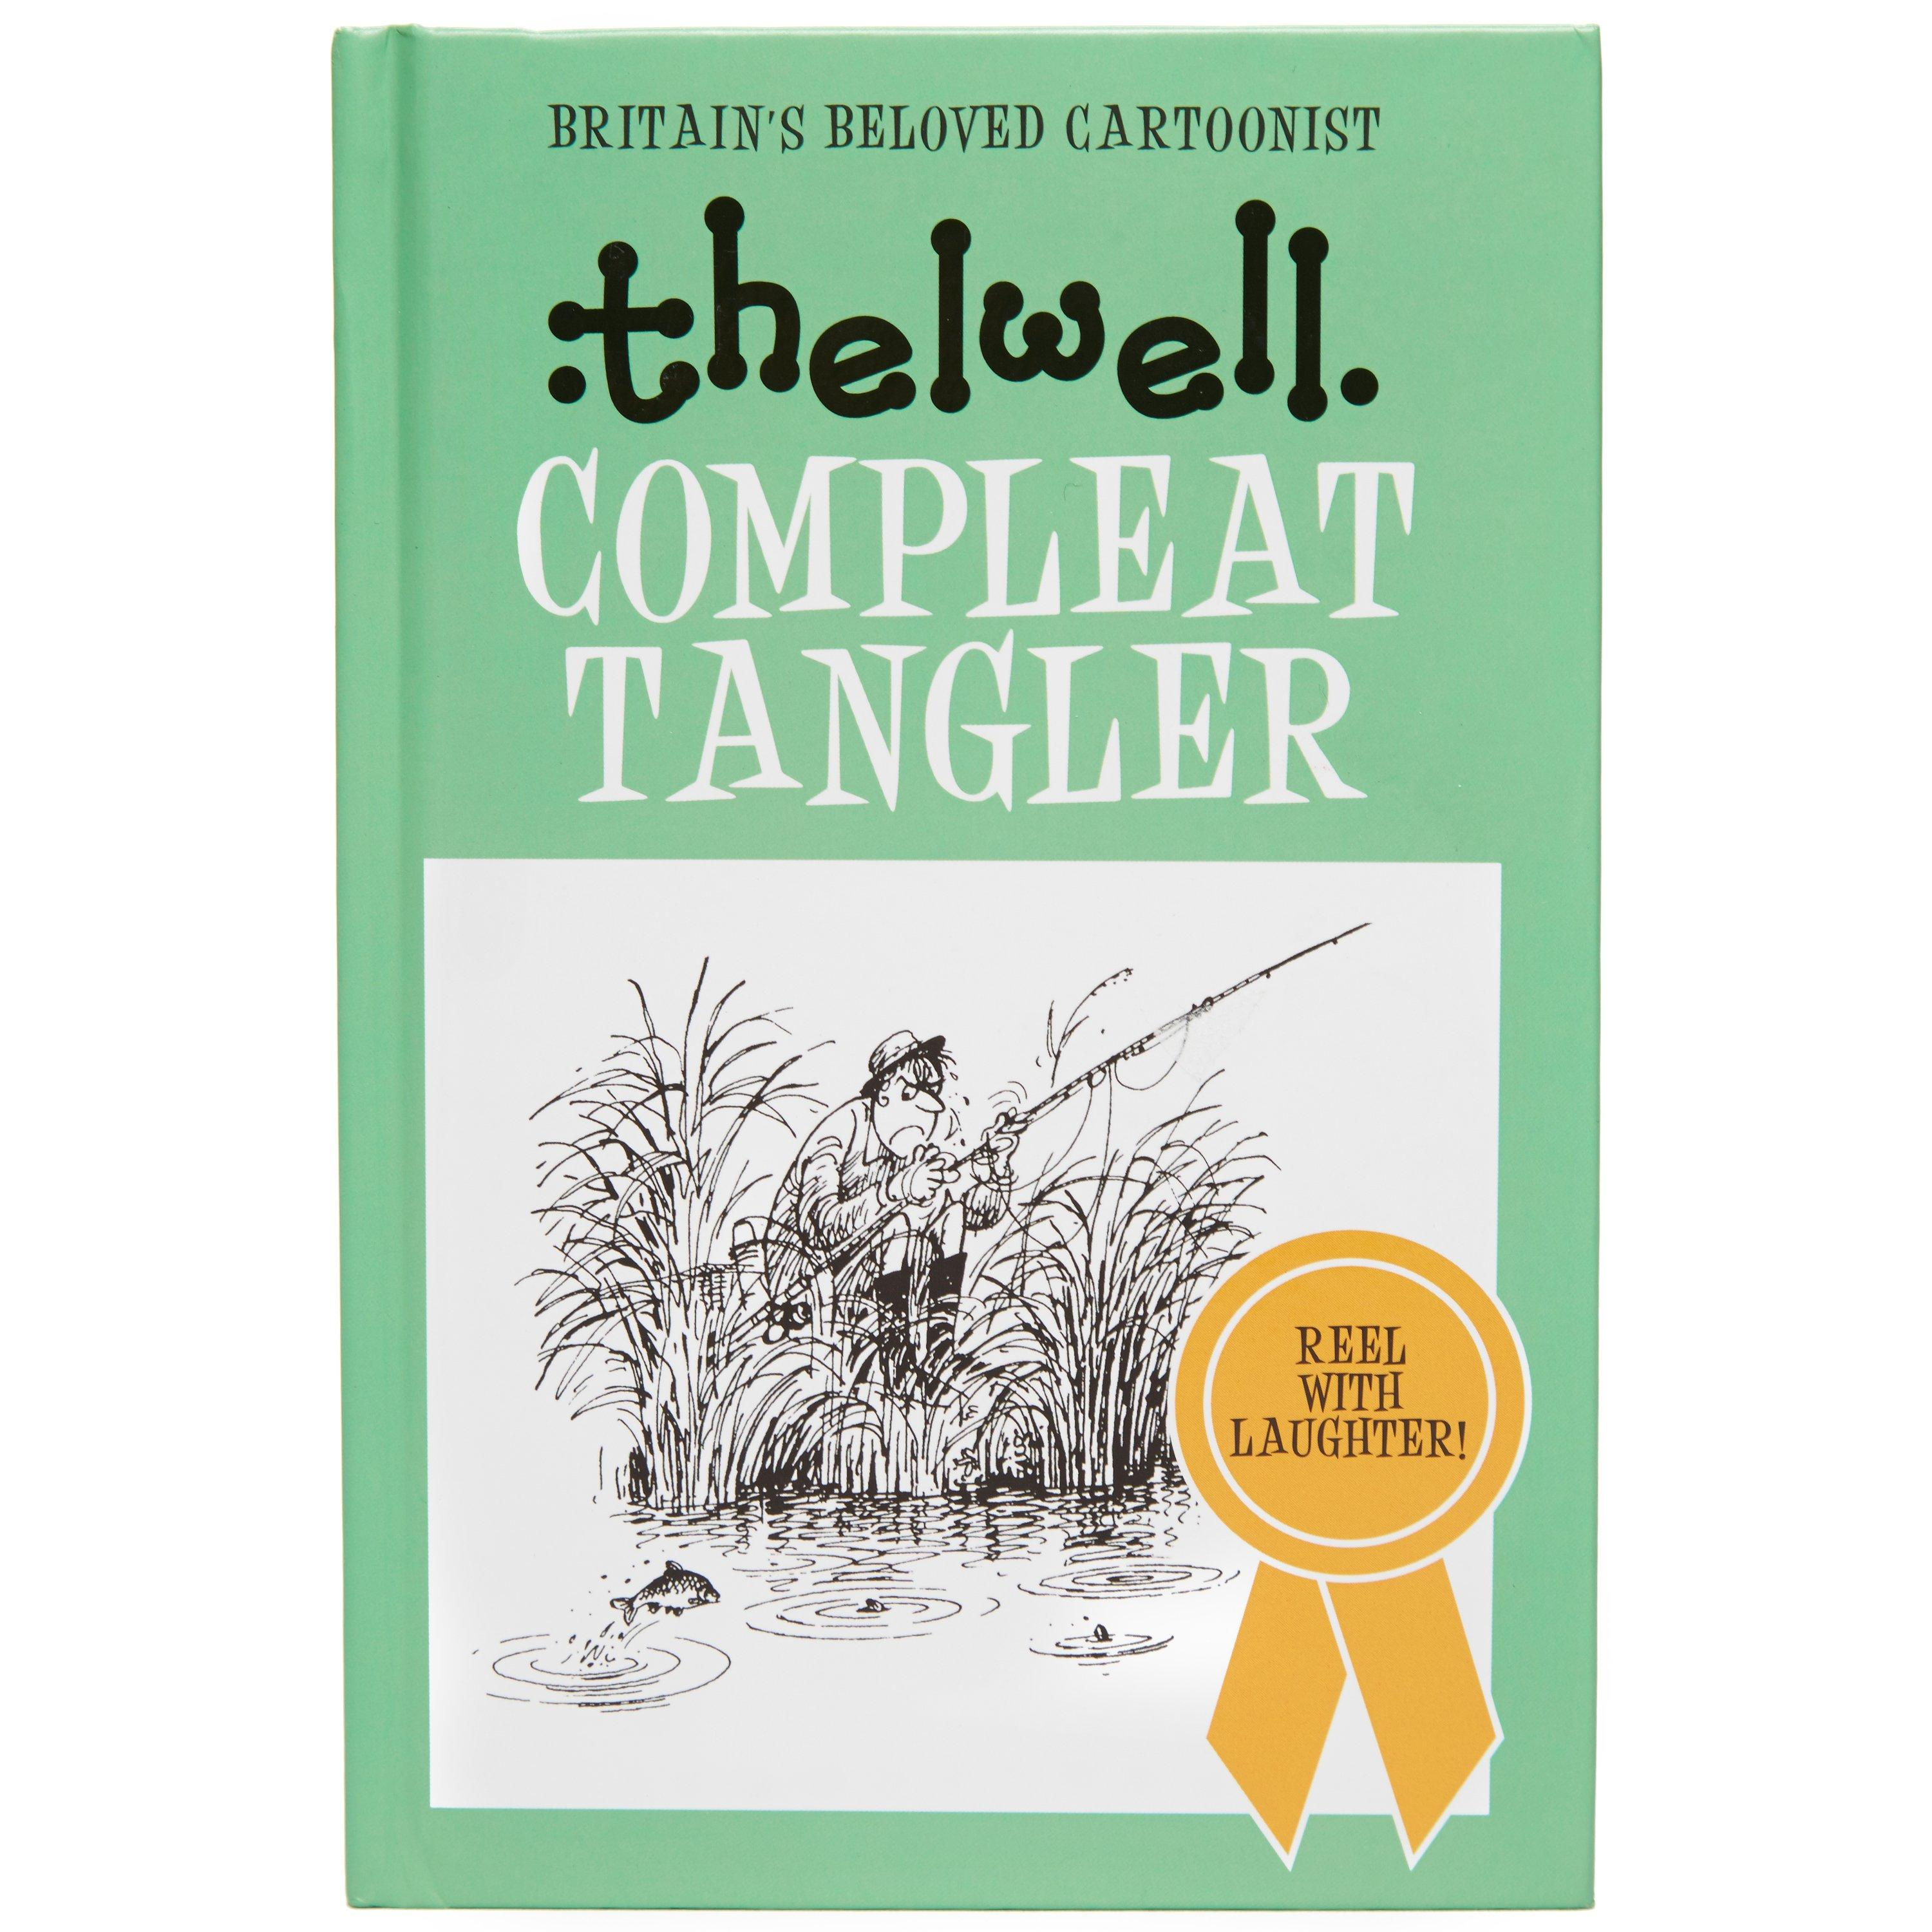 Foley Books Foley Books Compleat Tangler - N/A, N/A